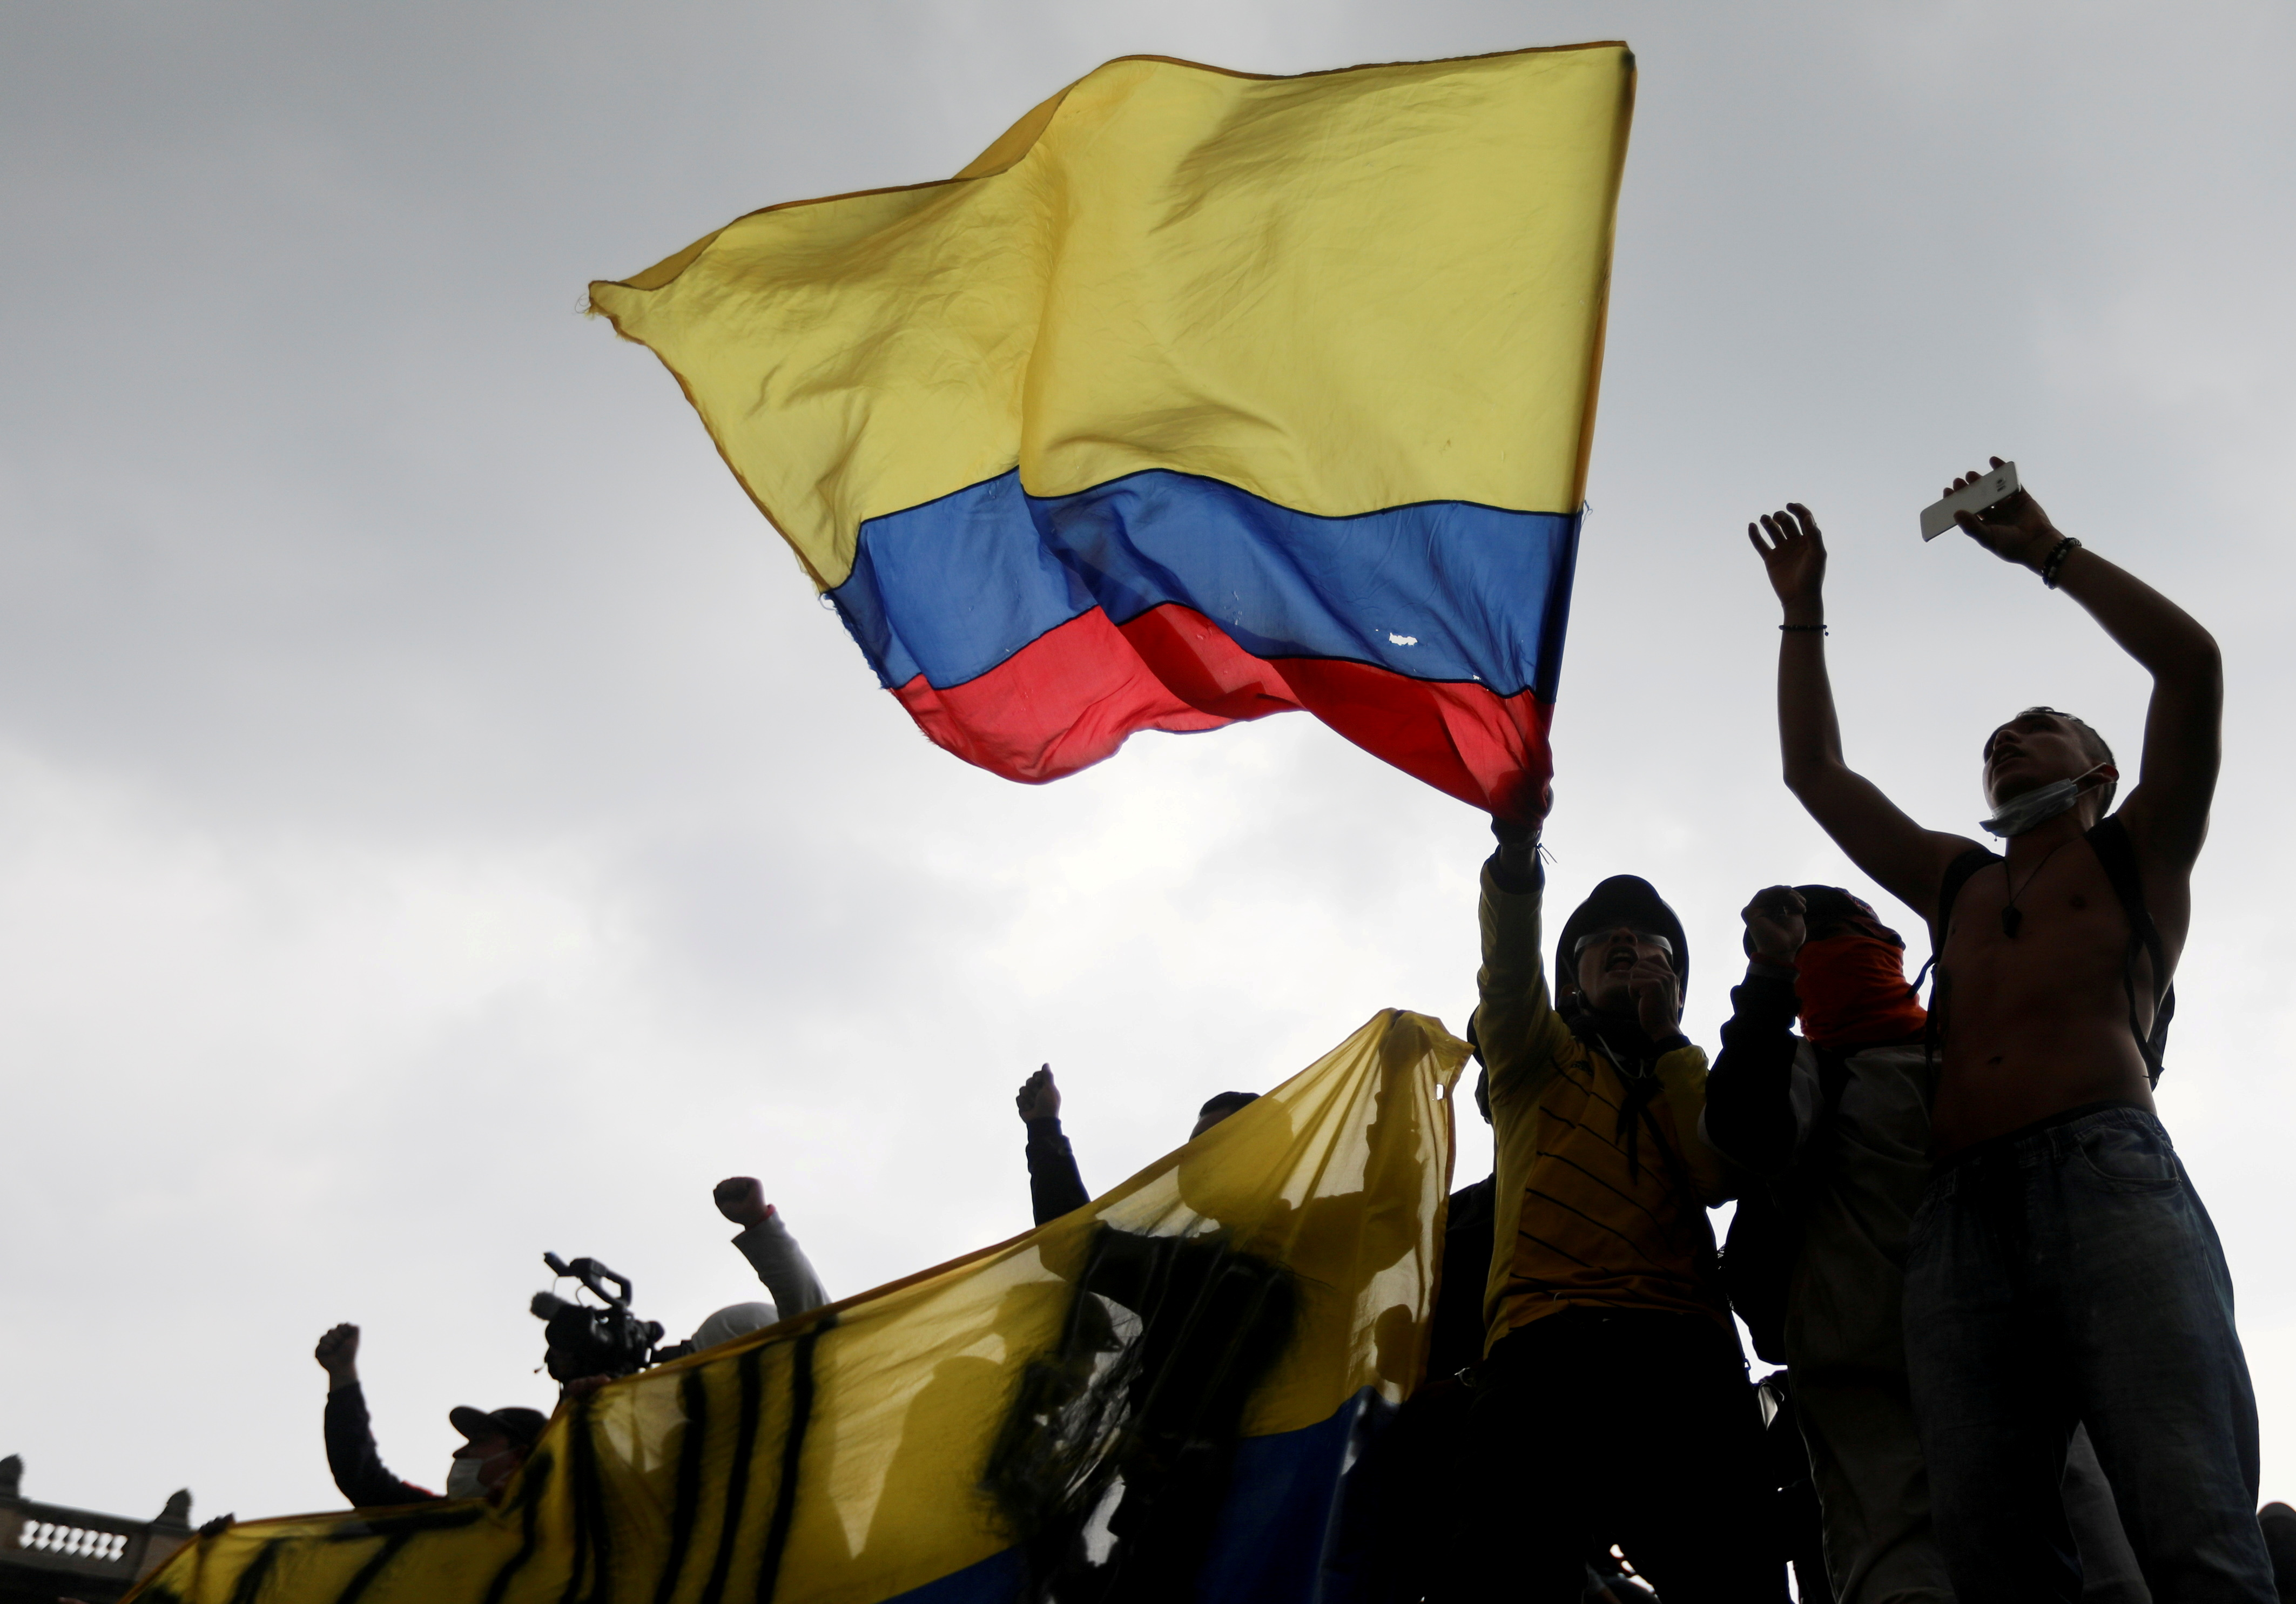 Demonstrators take part in a protest against the tax reform of President Ivan Duque's government in Bogota, Colombia, May 1, 2021. REUTERS/Luisa Gonzalez/